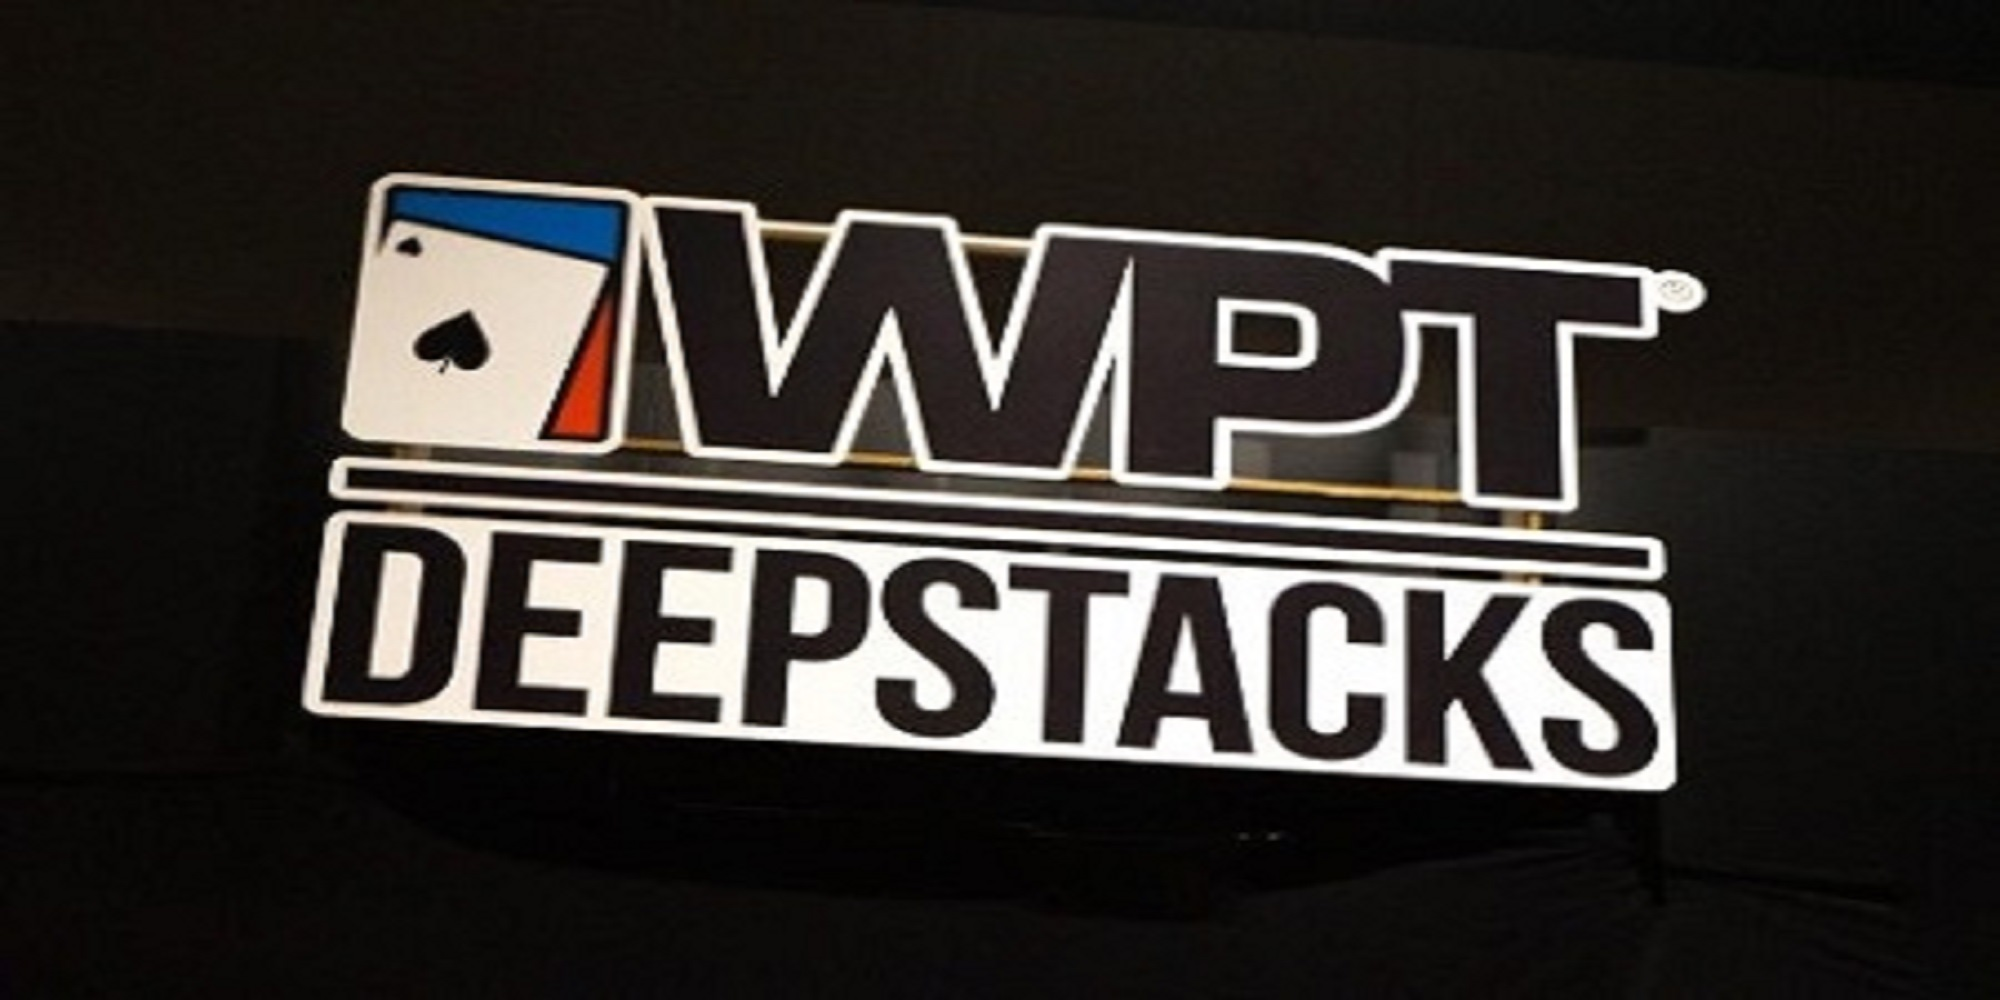 wpt-deepstacks